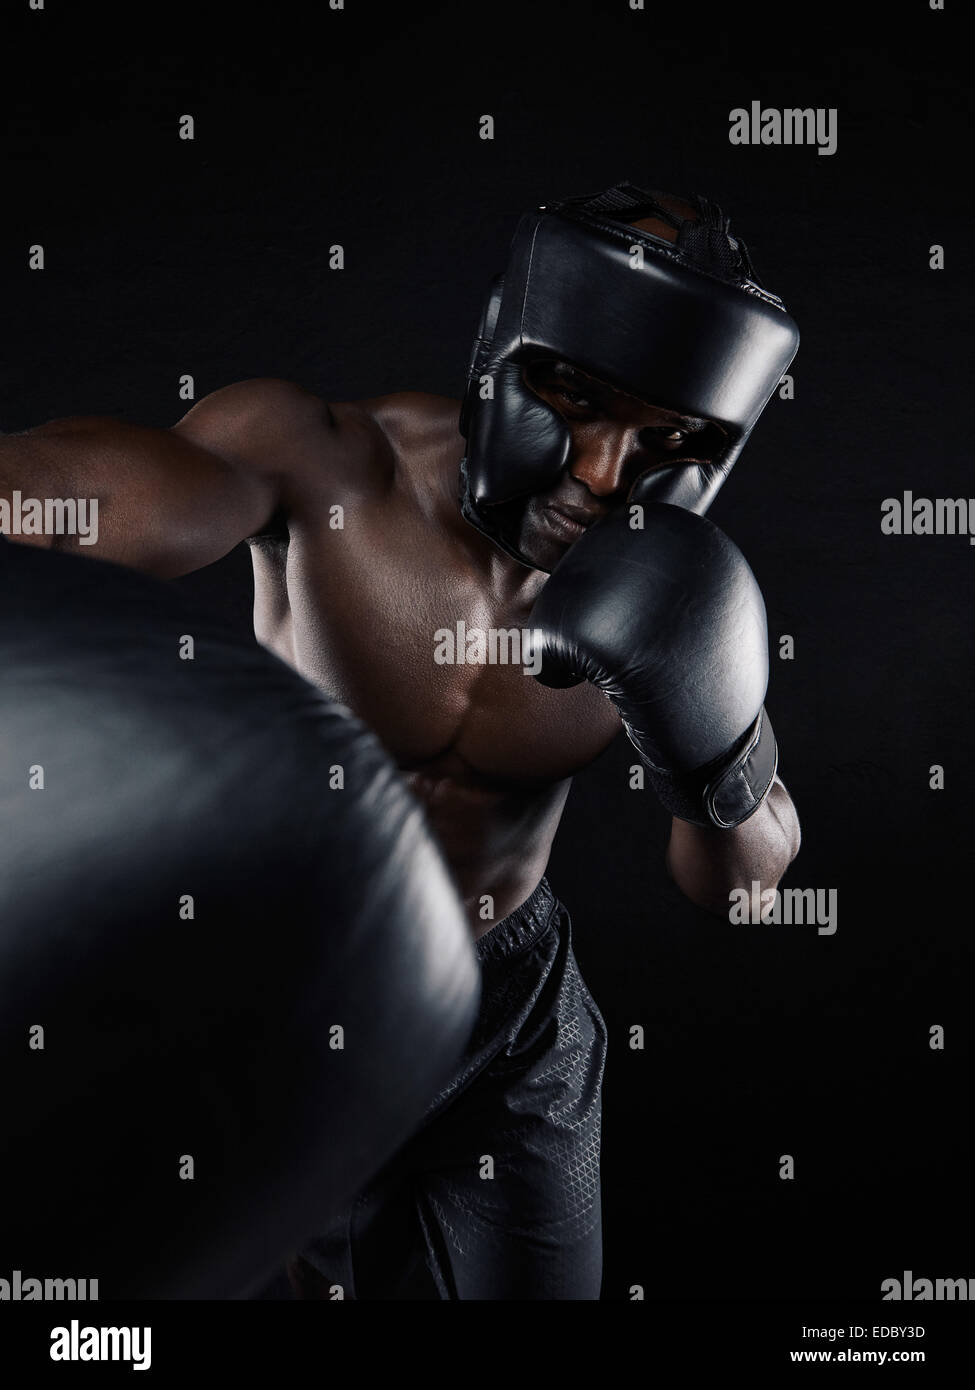 Portrait of a young man boxer throwing a punch at camera while practicing on black background. Male athlete wearing - Stock Image